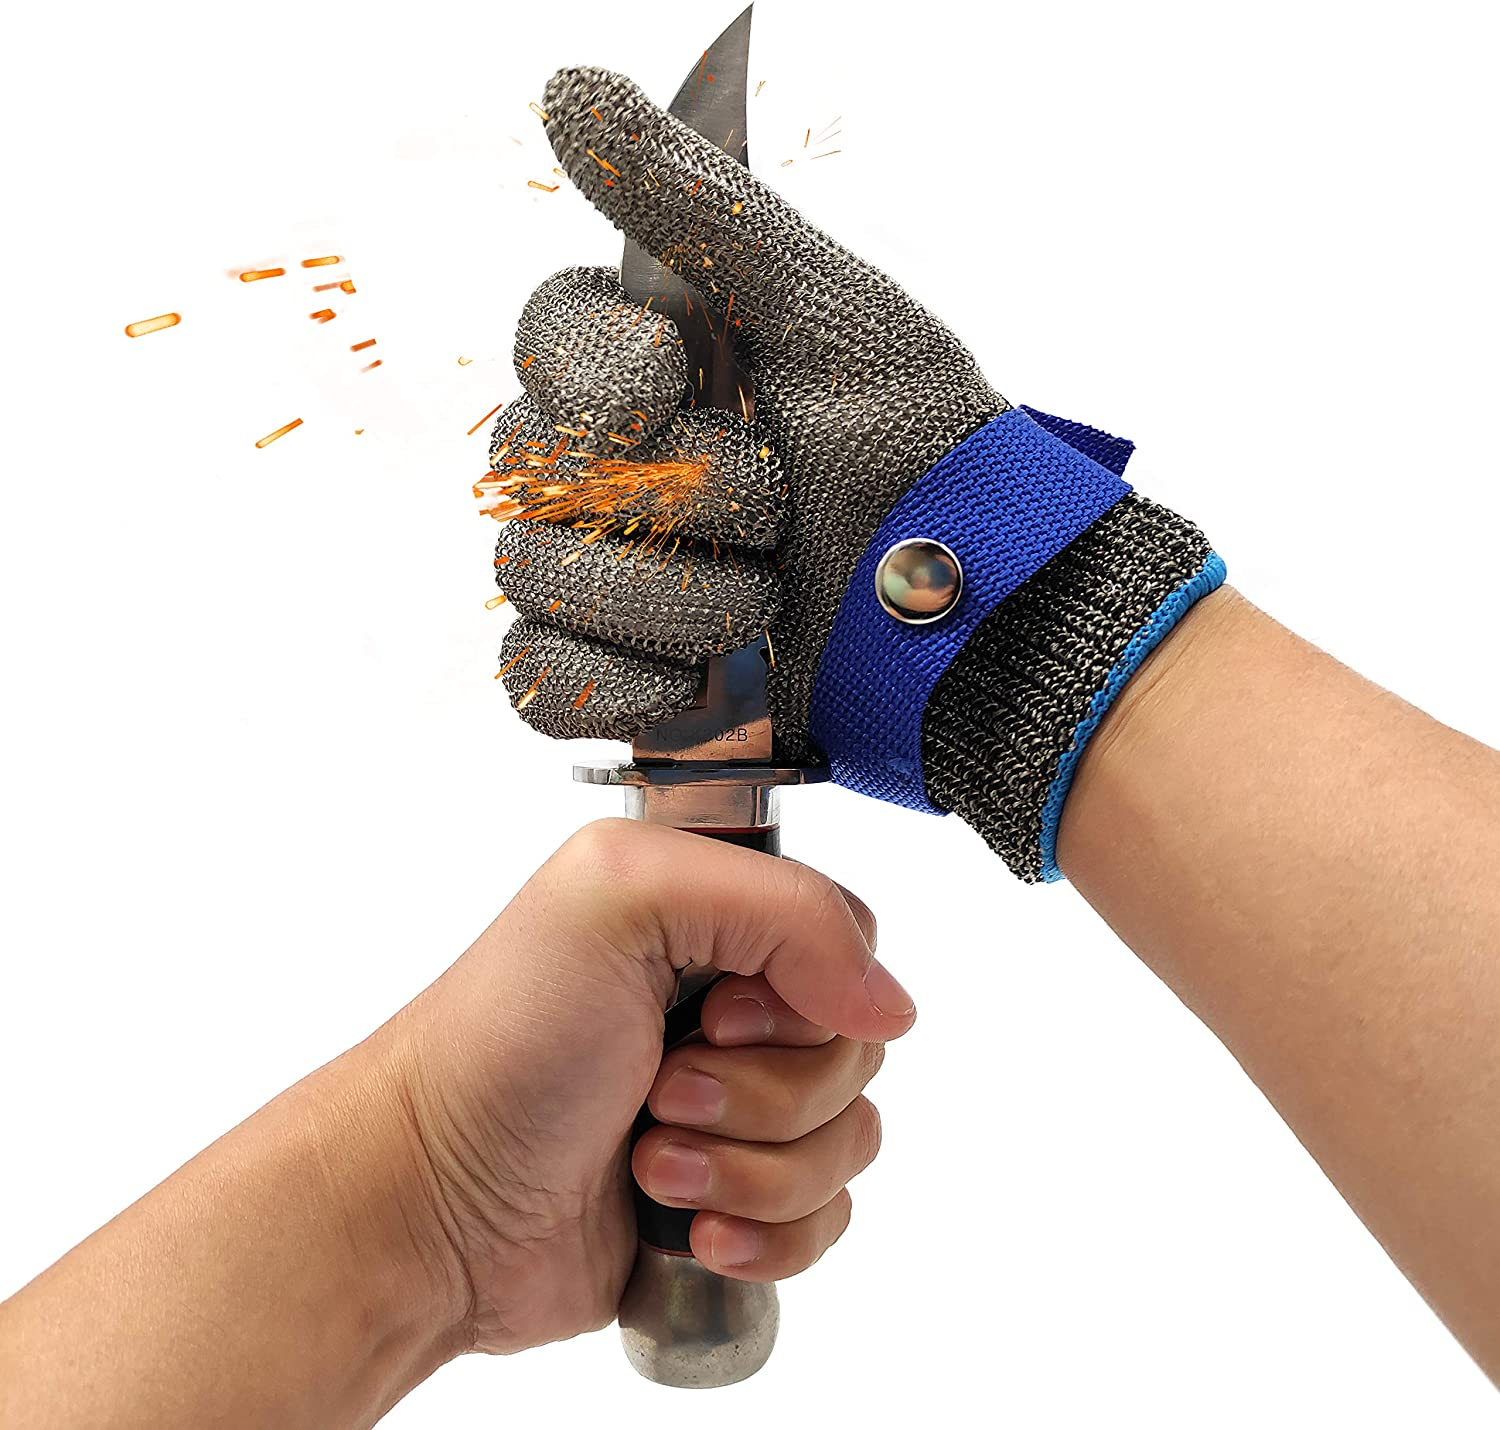 Cut Resistant Gloves-Stainless Steel Wire Metal Mesh Butcher Safety Work Gloves for Meat Cutting, fishing (Large) - -